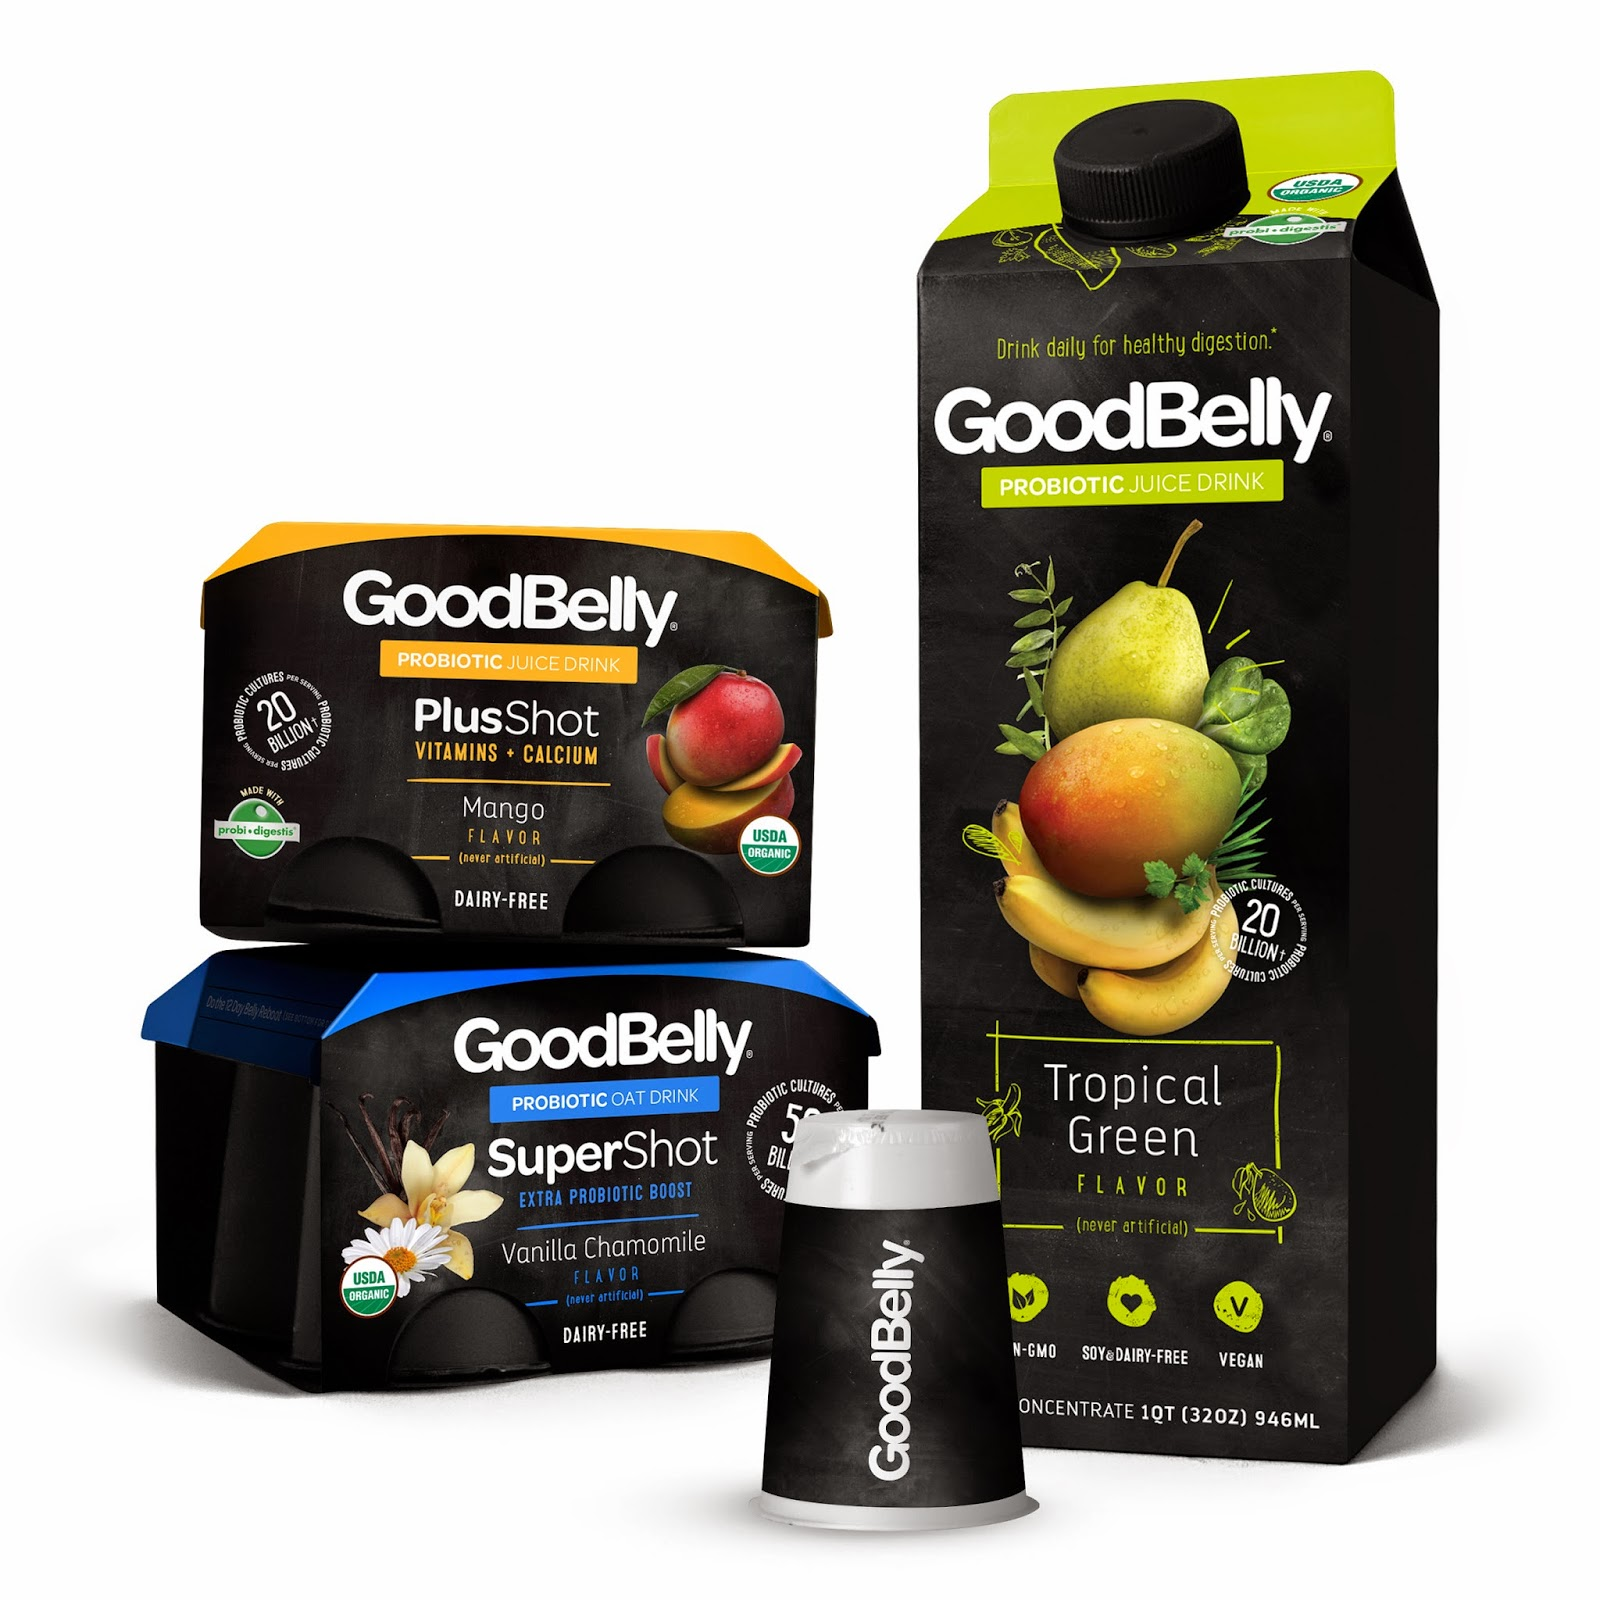 GoodBelly Enter for a Chance to Win Good Belly Tropical Green